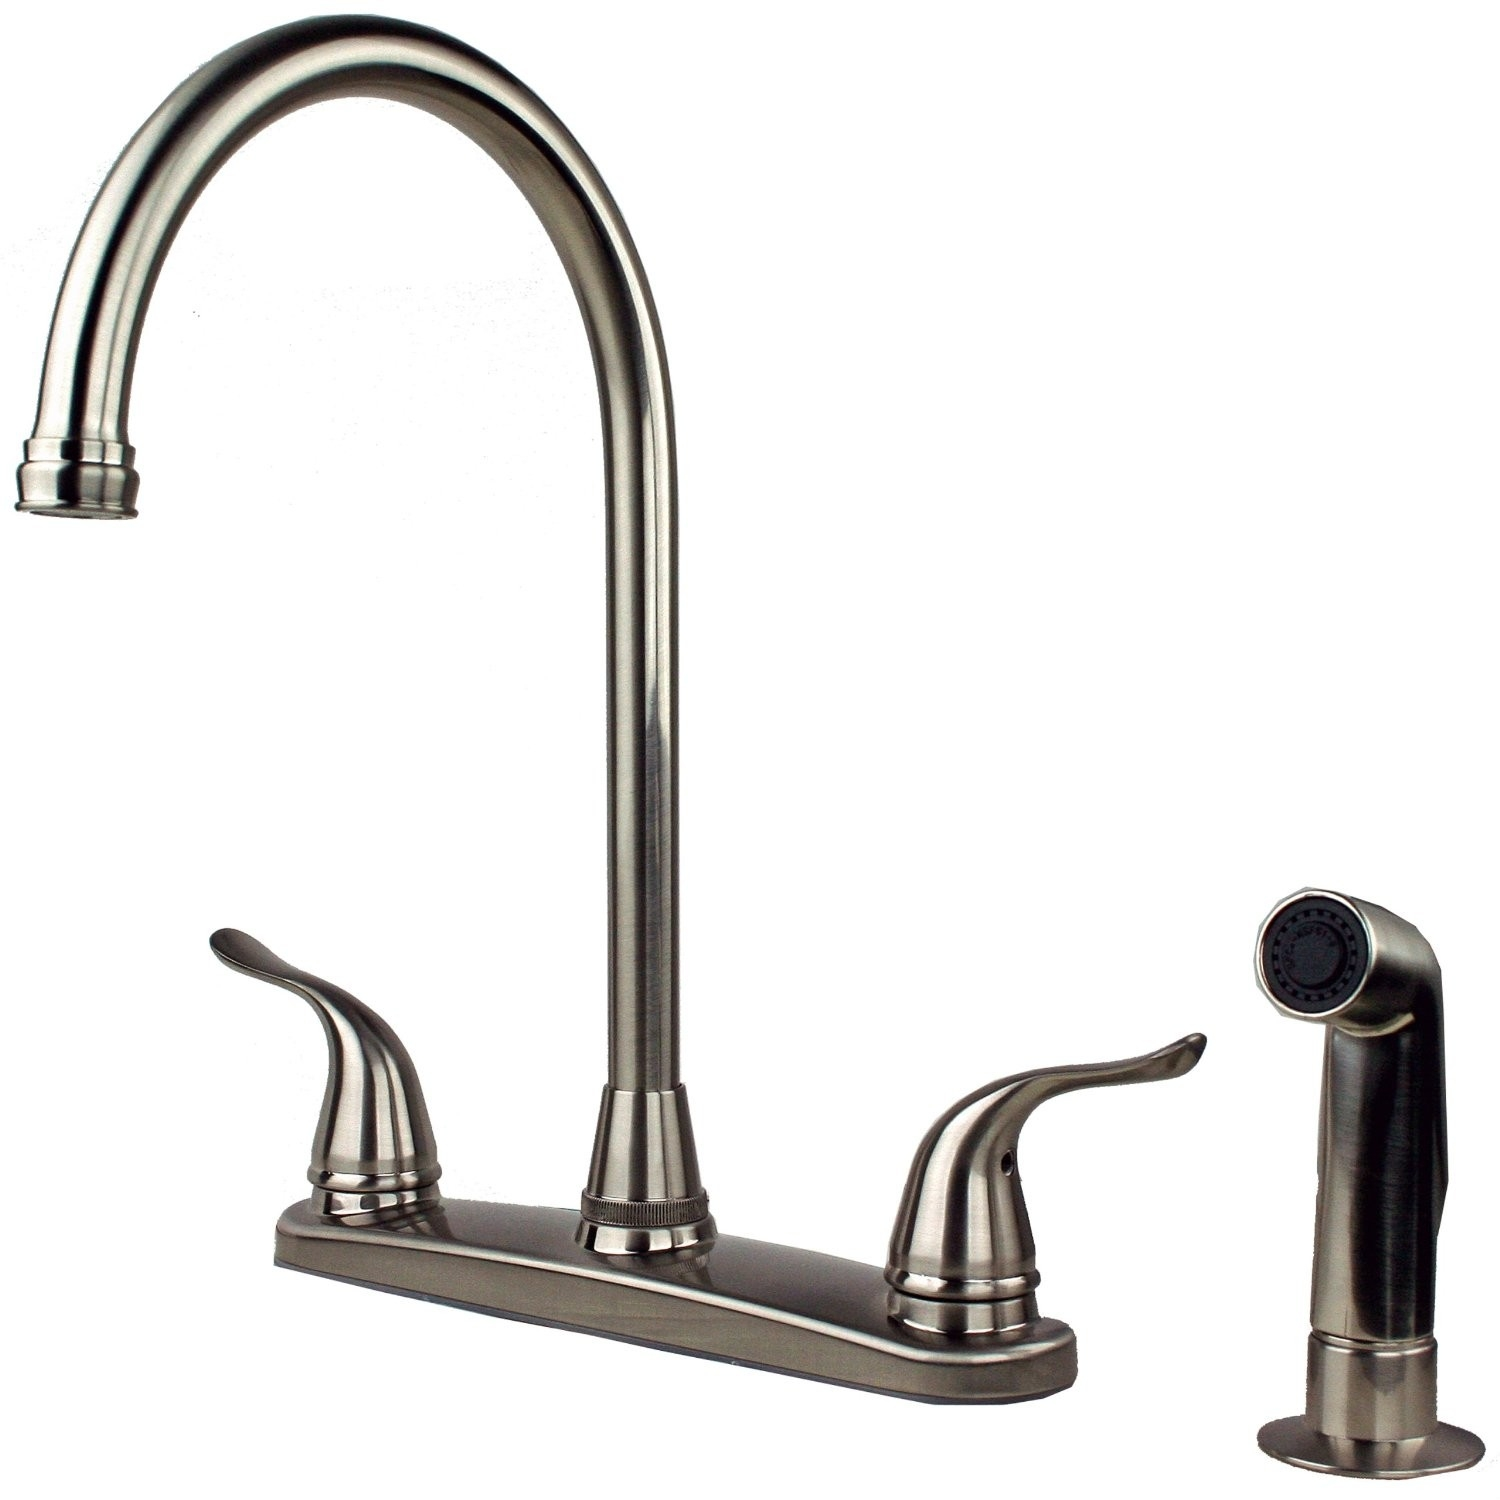 bar sink faucet with sprayer bar sink faucet with sprayer beautiful kitchen sink and faucet sets 49 for your home designing 1500 x 1500